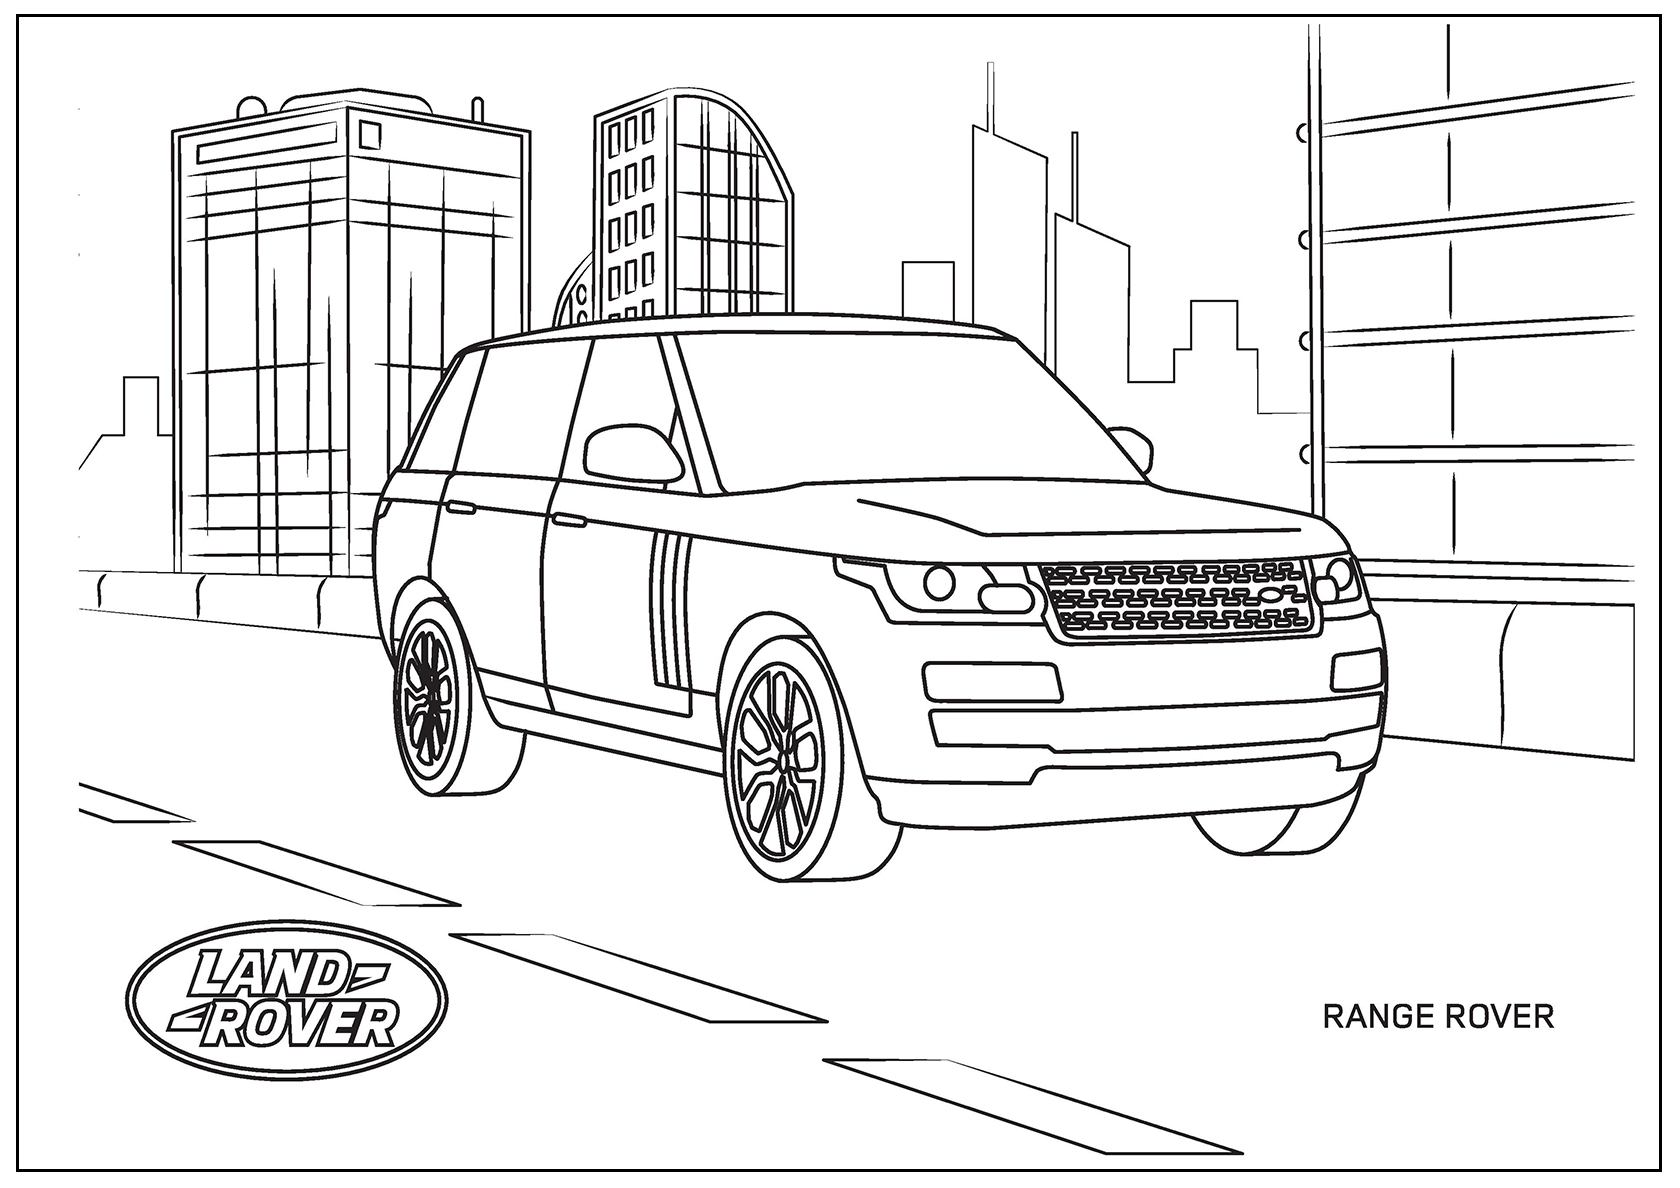 Land Rover Coloring Pages To Download And Print For Free